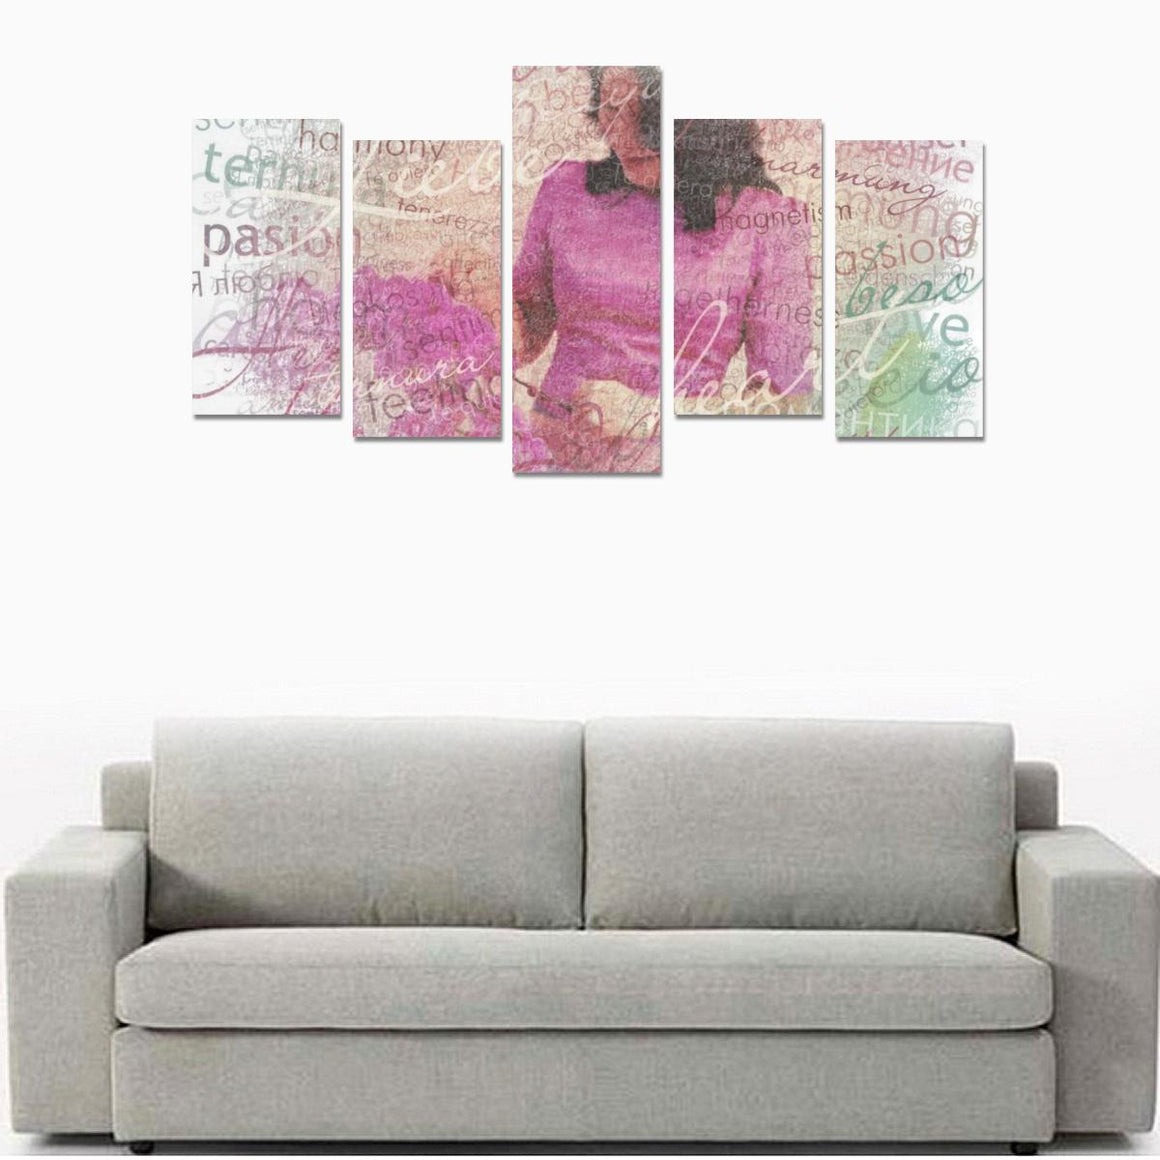 Levi Thang Violet Vintage Letters Wall Art Canvas Print Sets E